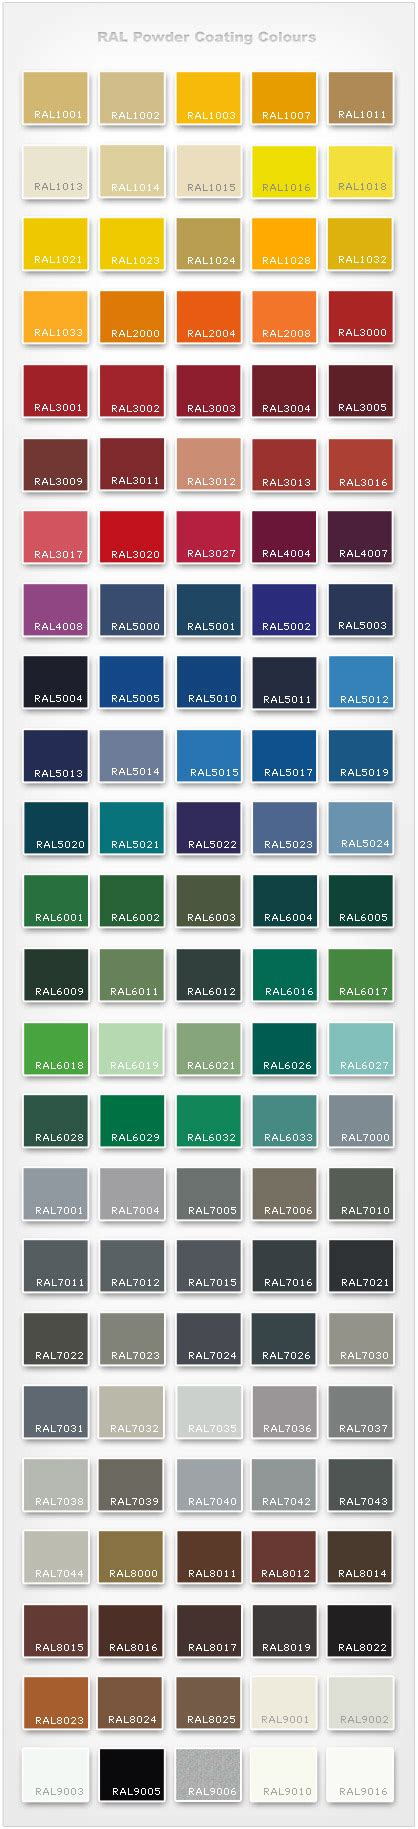 pattern color codes jotun ral color chart related keywords suggestions